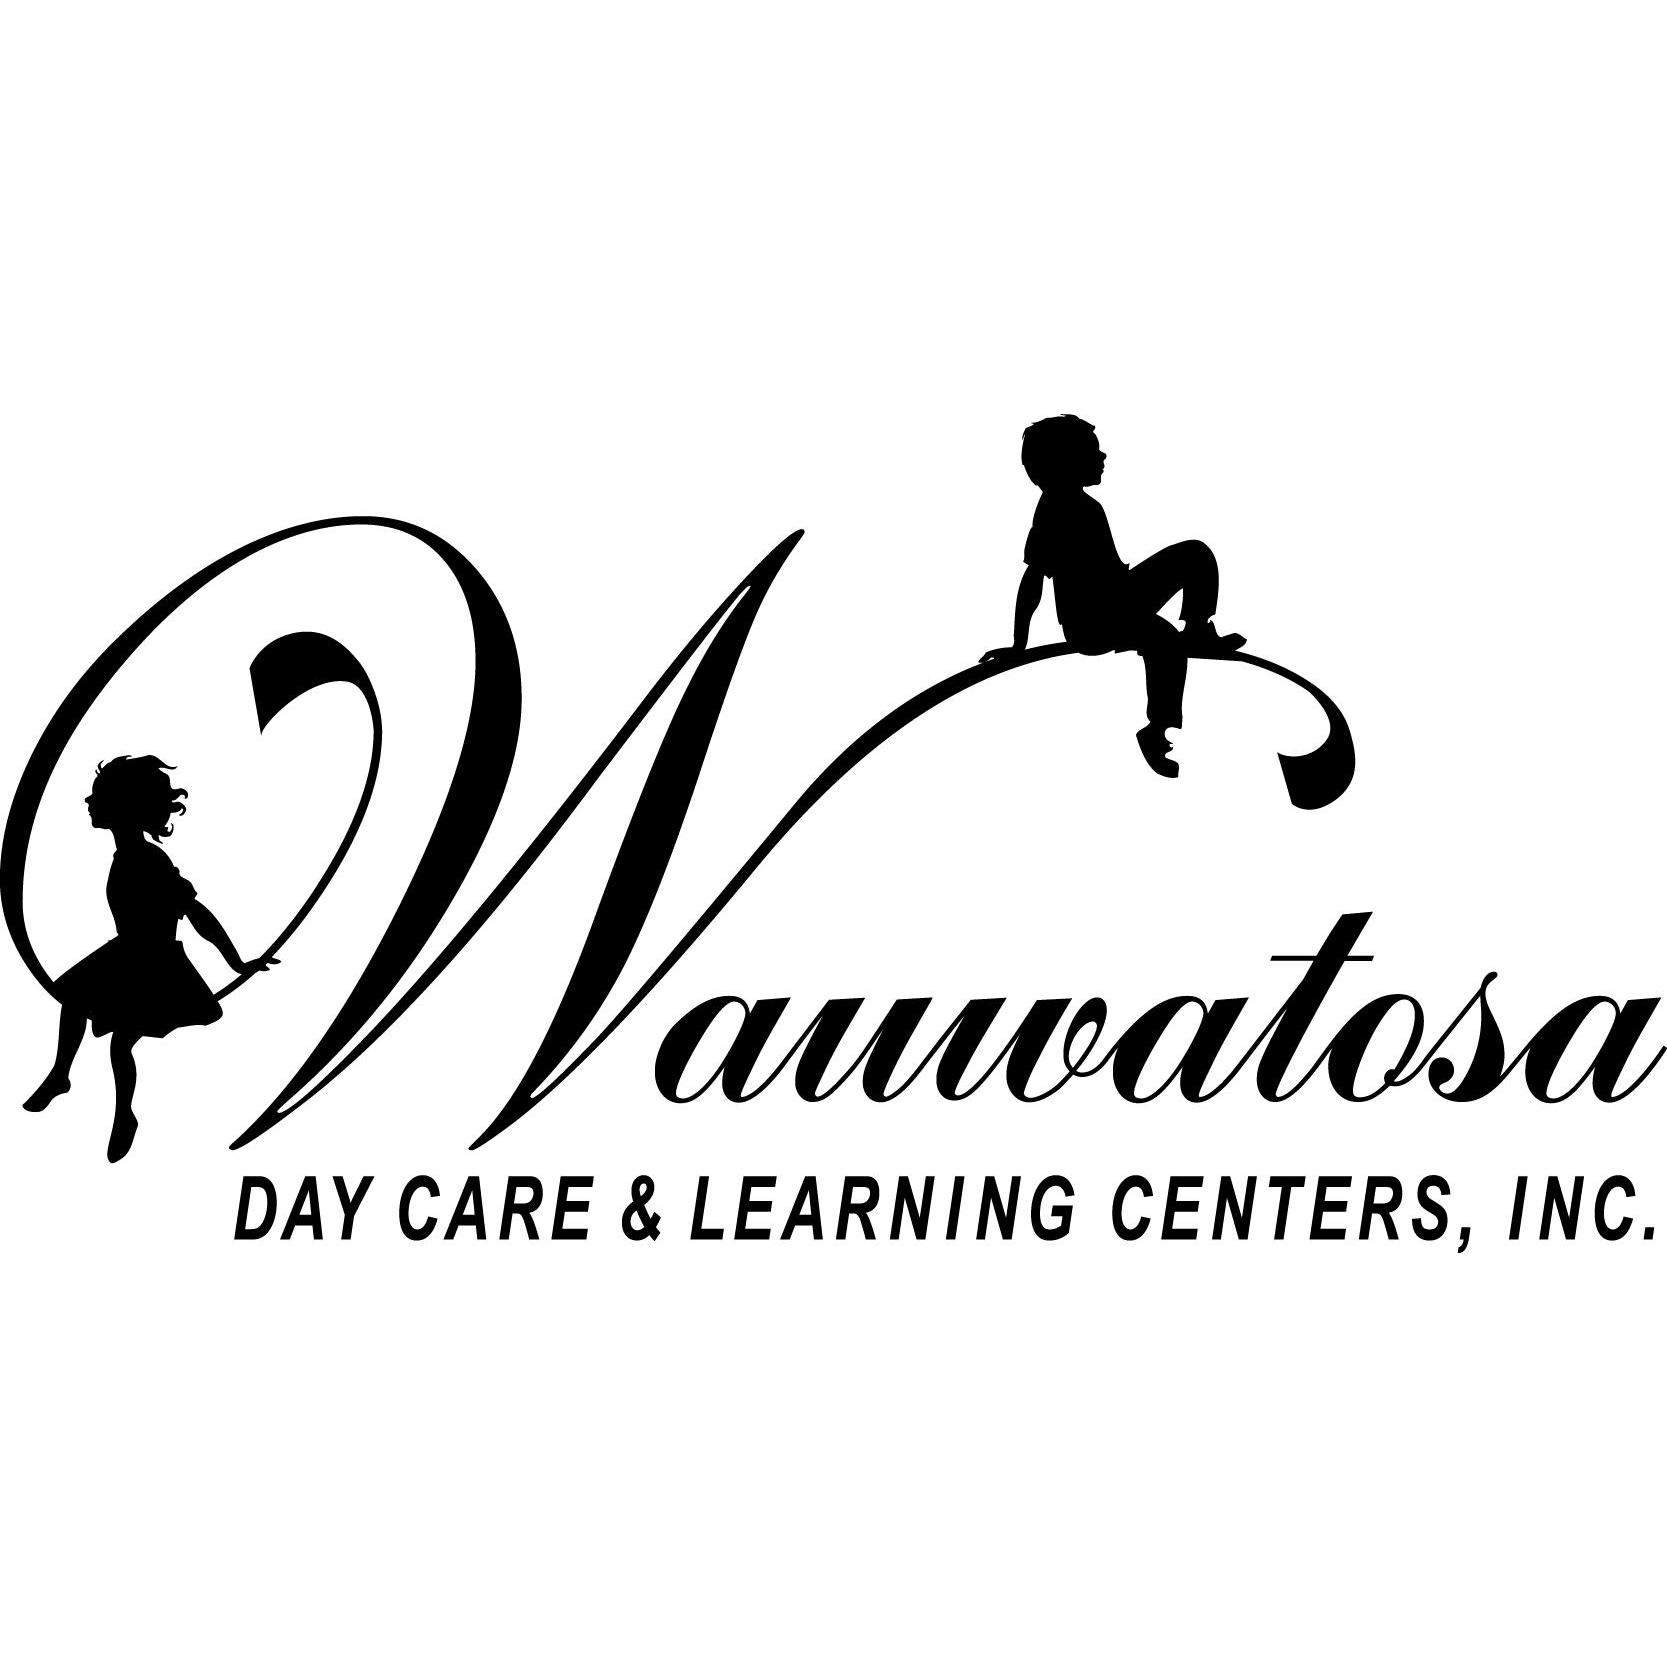 Wauwatosa Daycare & Learning Center